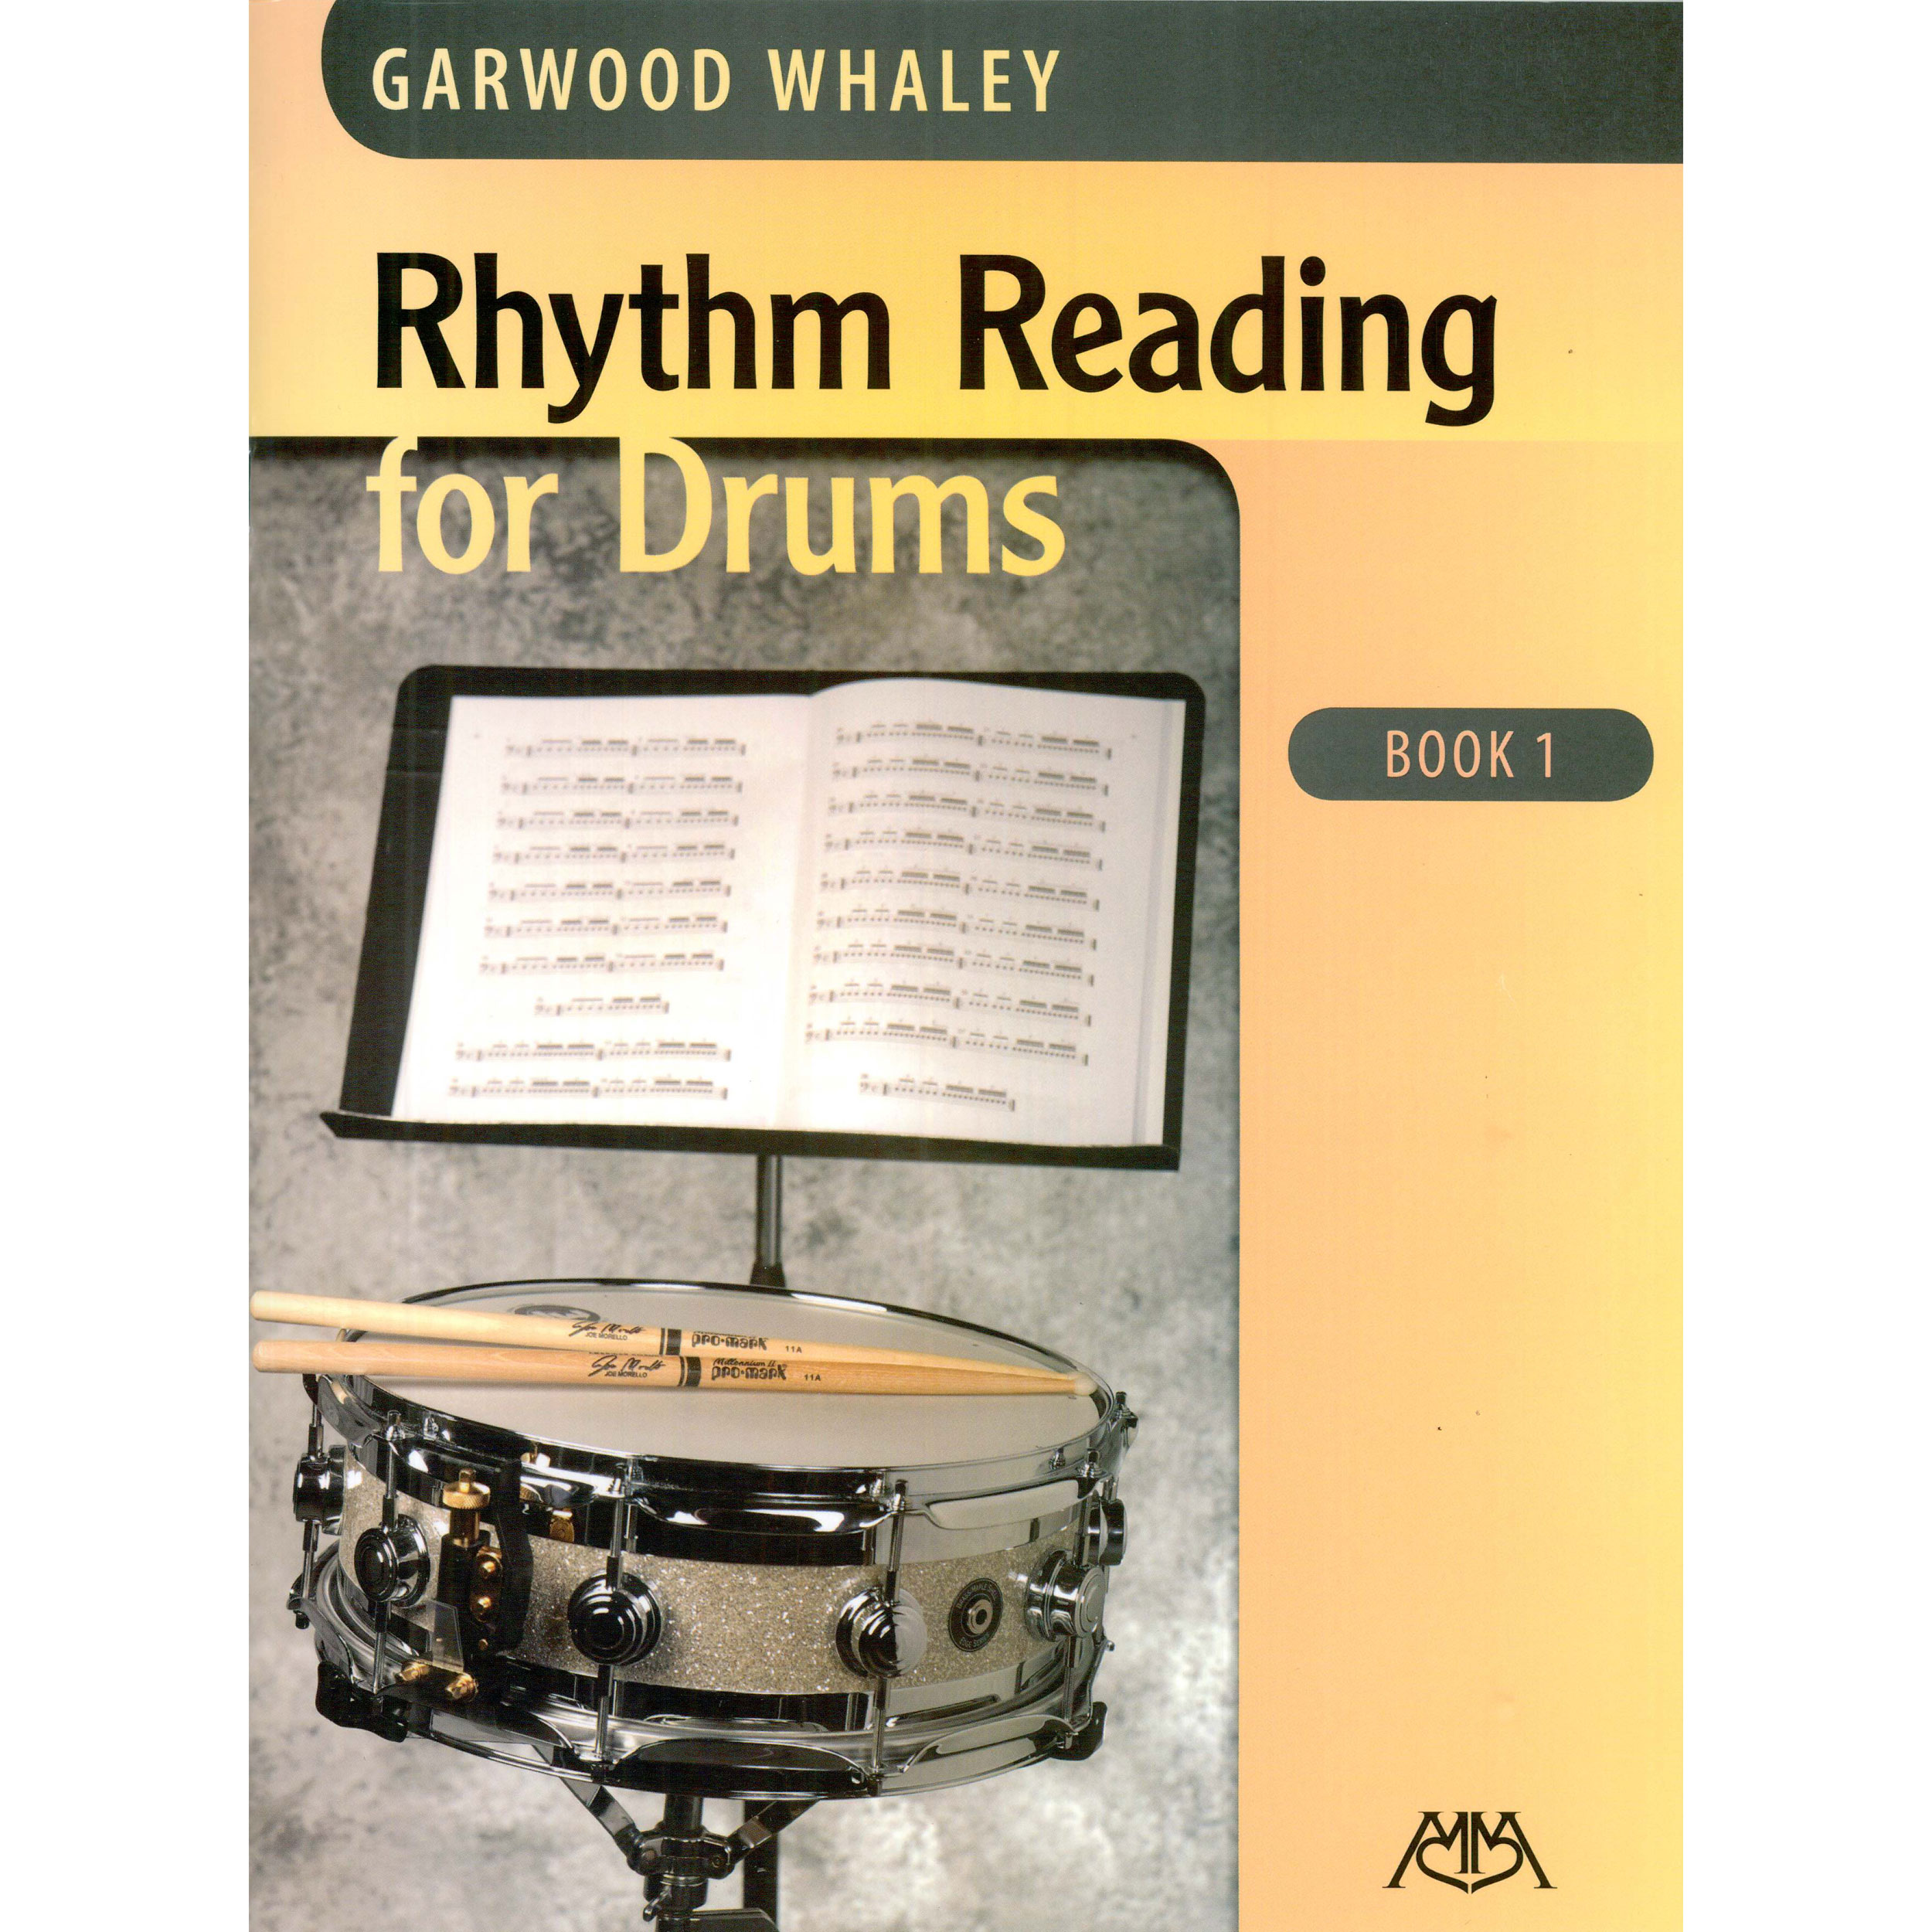 Rhythm Reading for Drums Book 1 by Garwood Whaley